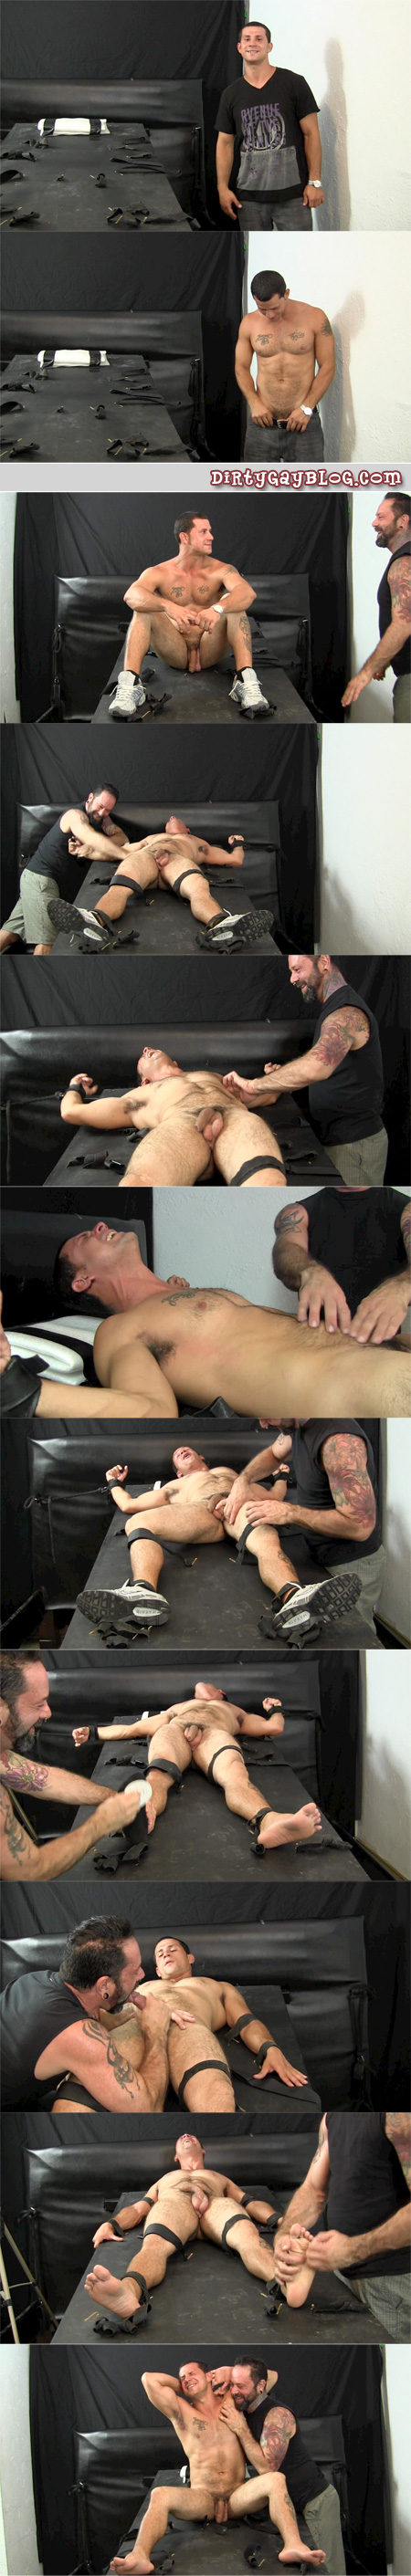 Beefy, muscular straight guy in bondage and tickled tortured by another man.